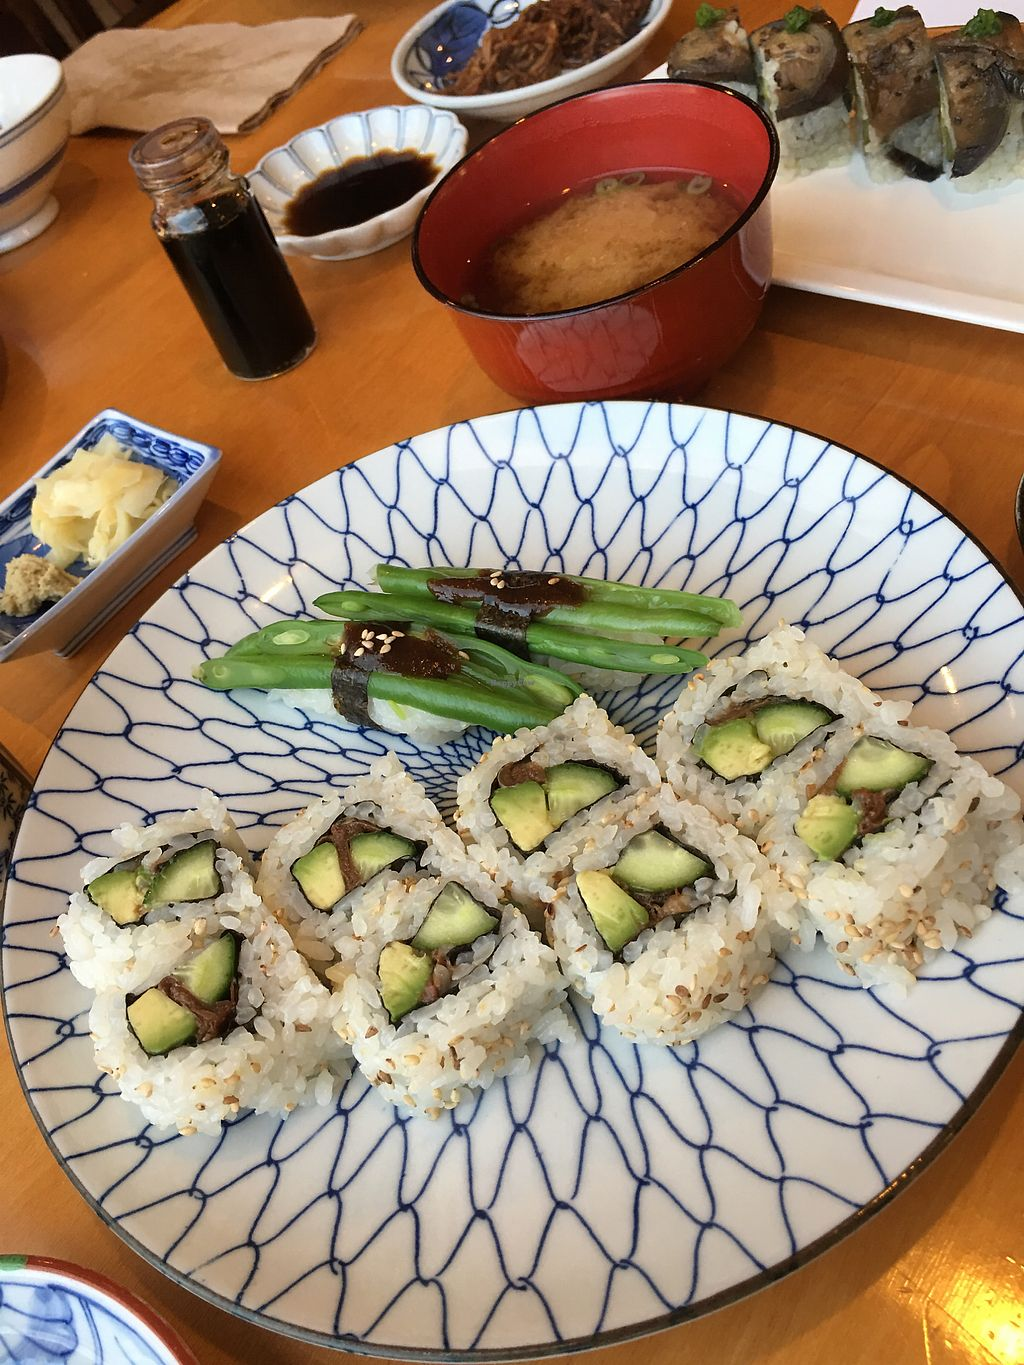 """Photo of Minako Organic-ish  by <a href=""""/members/profile/neil"""">neil</a> <br/>Delicious Vegan Sushi with Miso Soup and assorted pickled salads <br/> March 17, 2018  - <a href='/contact/abuse/image/114619/372162'>Report</a>"""